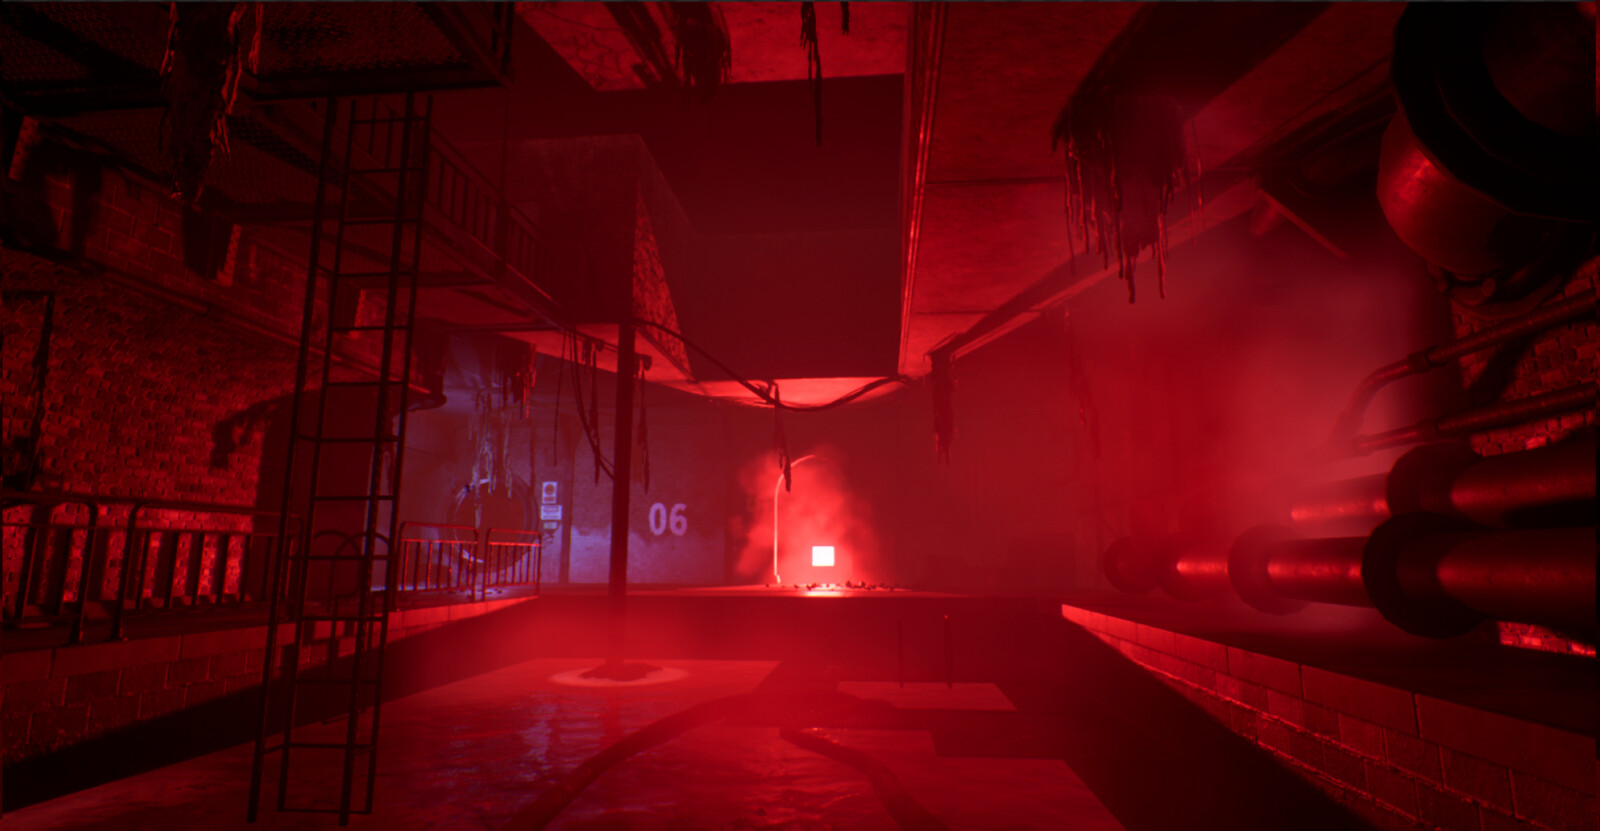 Room 2 - Red